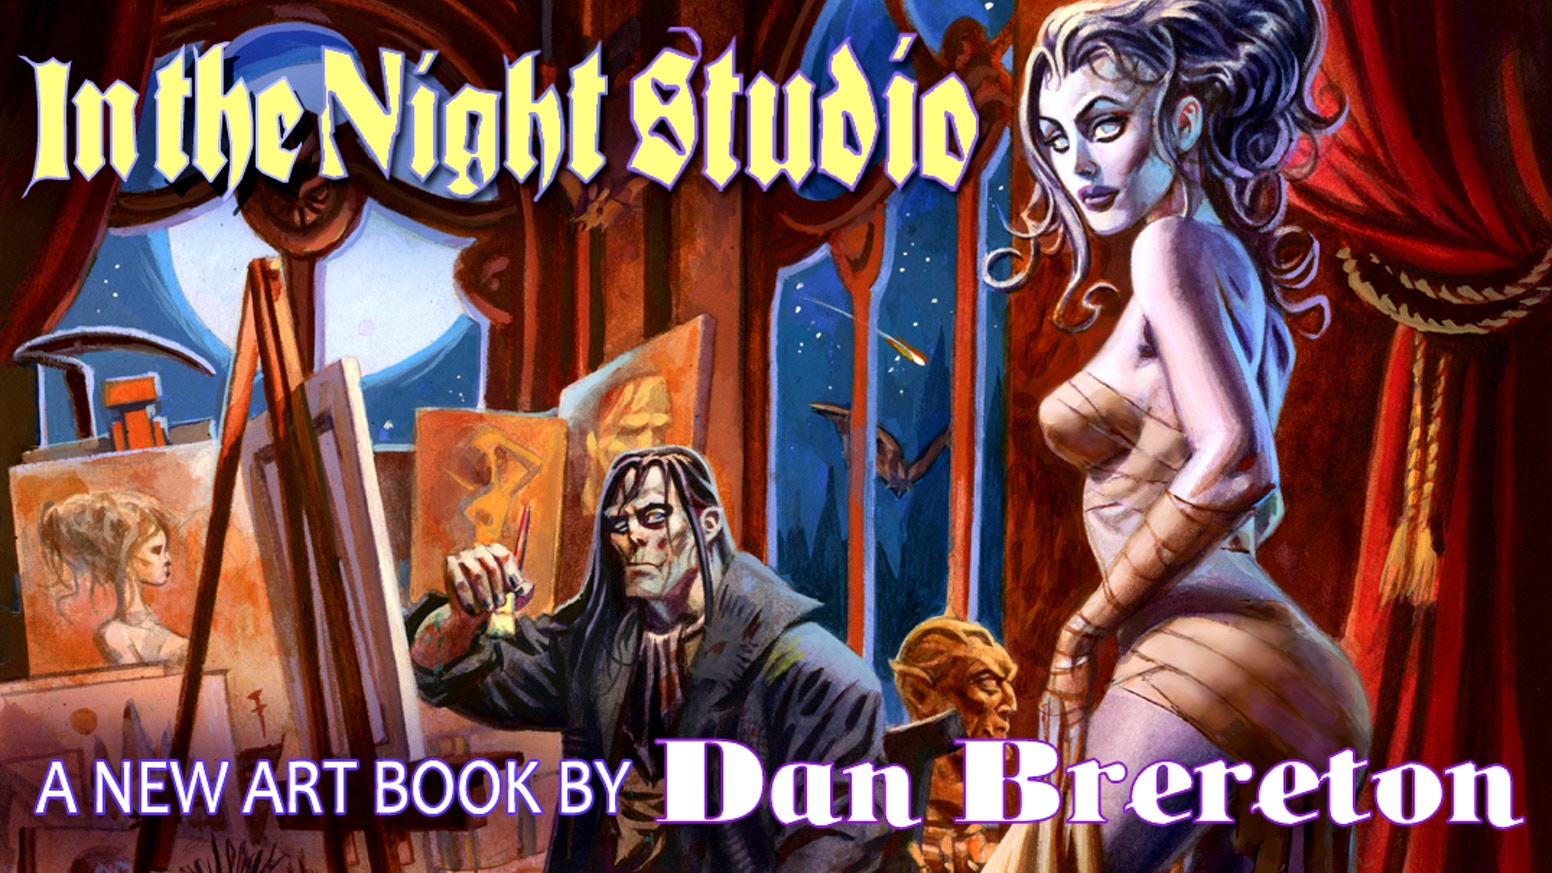 A special expanded signature edition of IN THE NIGHT STUDIO,  a new Art Book by Dan Brereton.